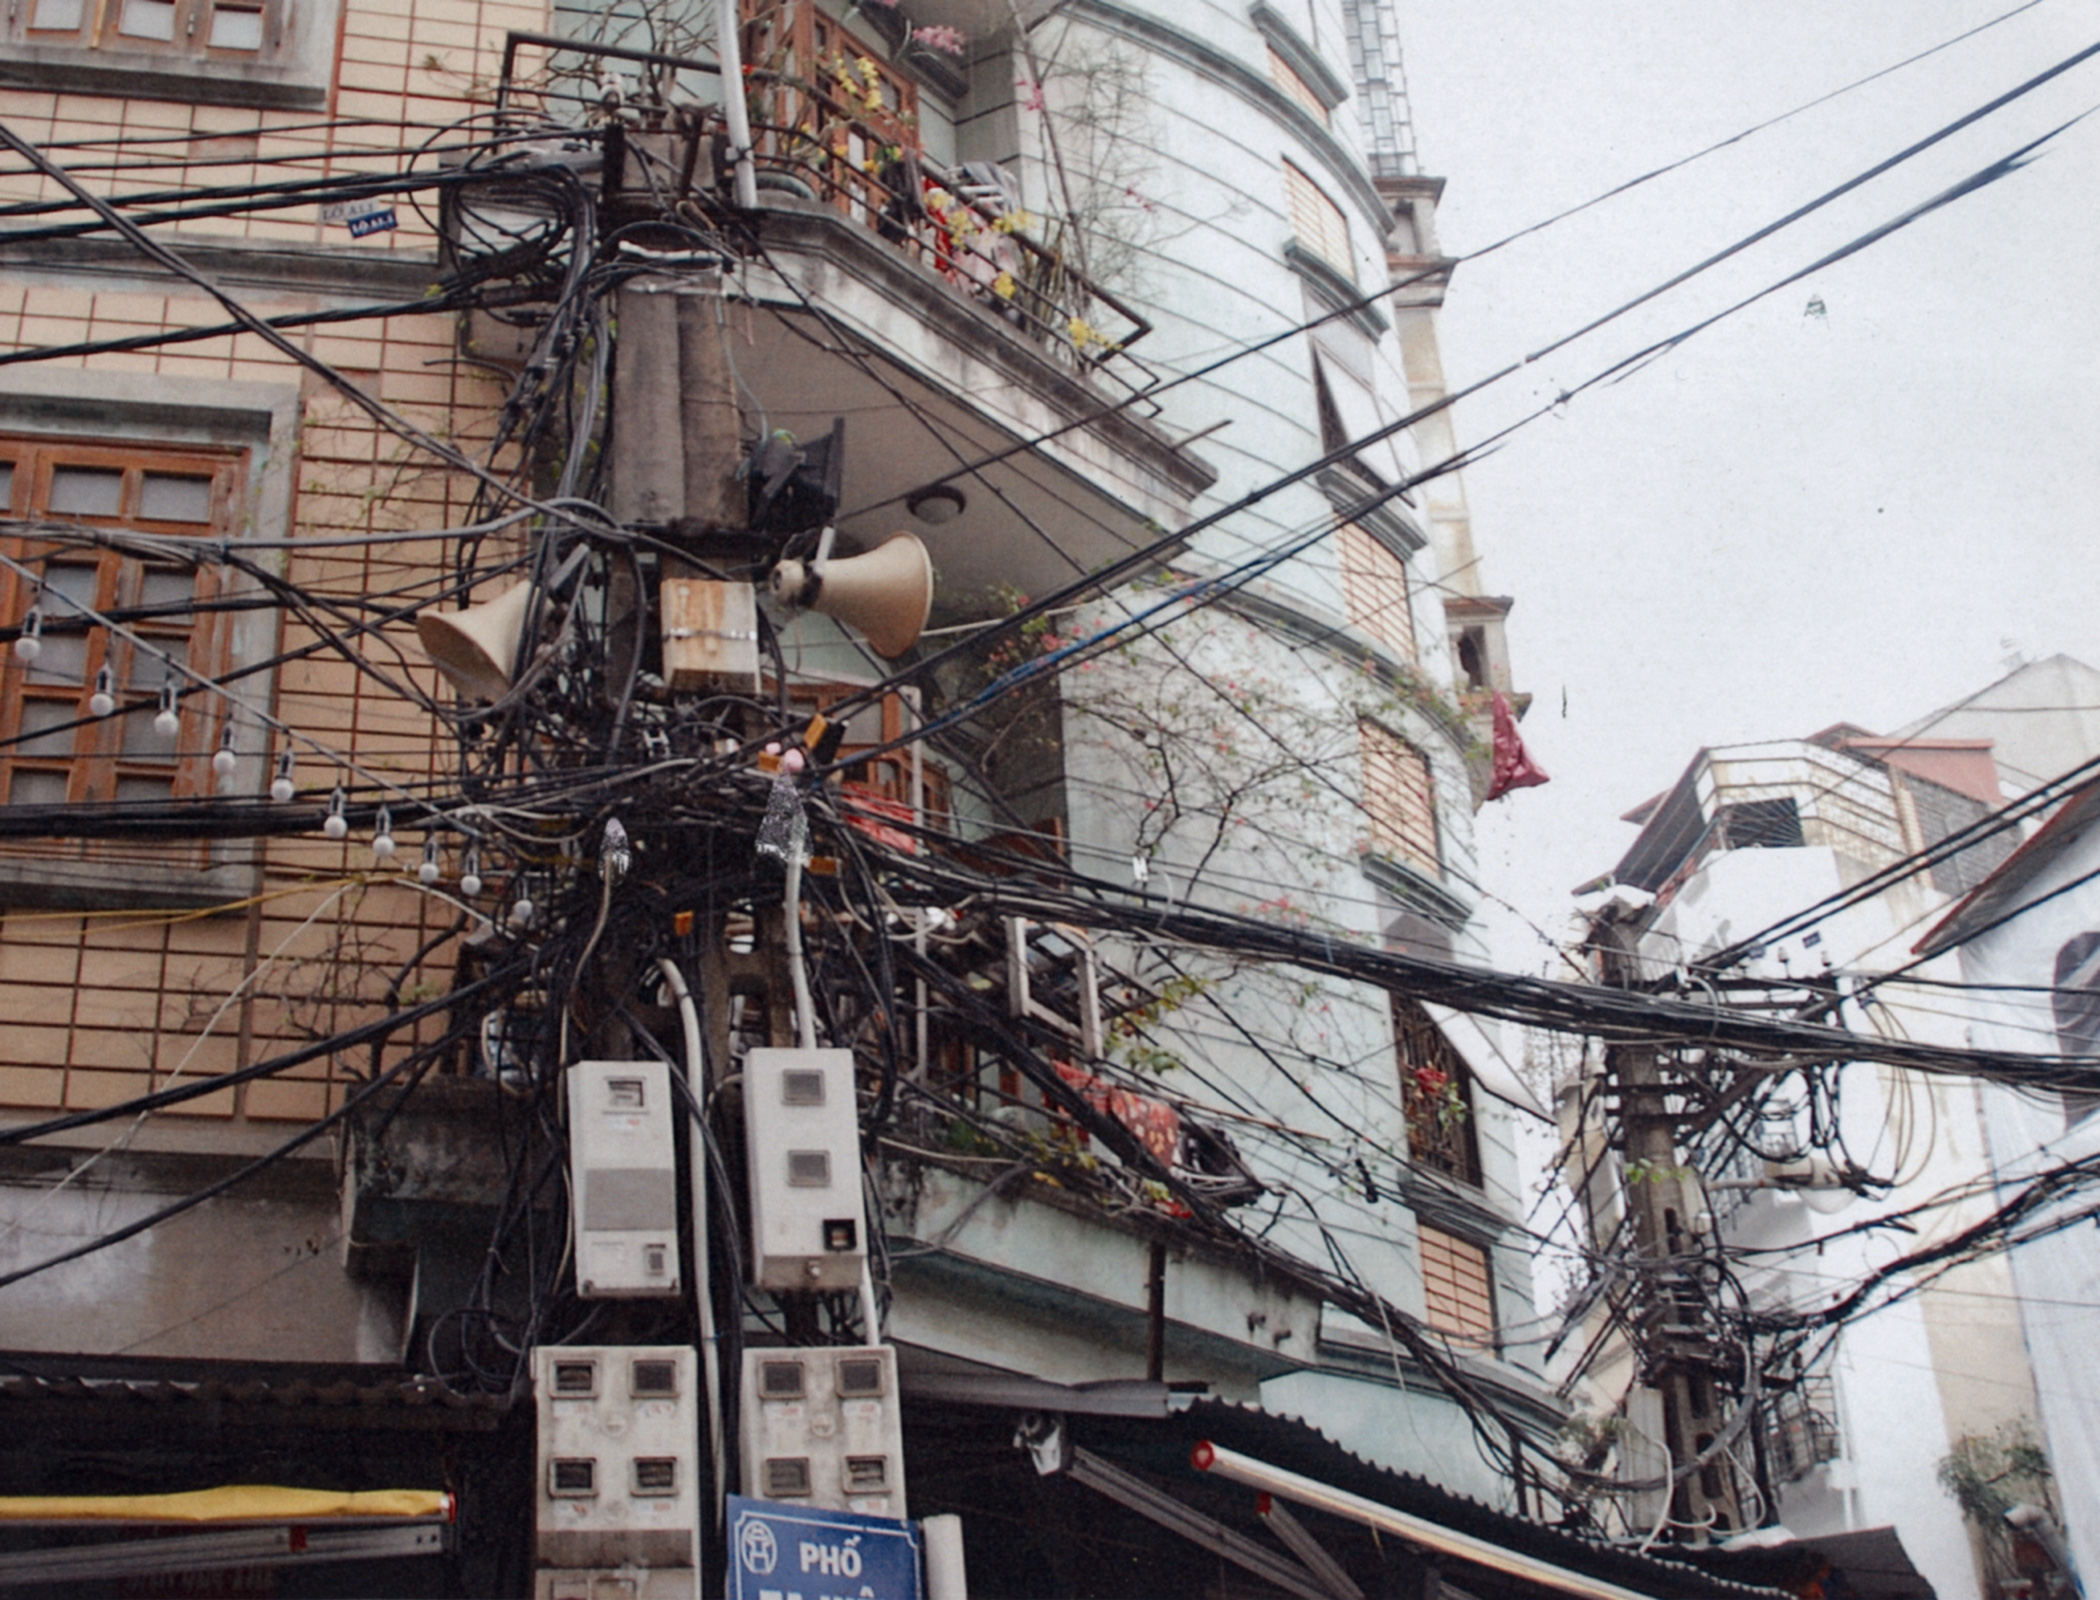 world's worst wiring the top three most shocking electrical, wiring diagram, electrical wiring support